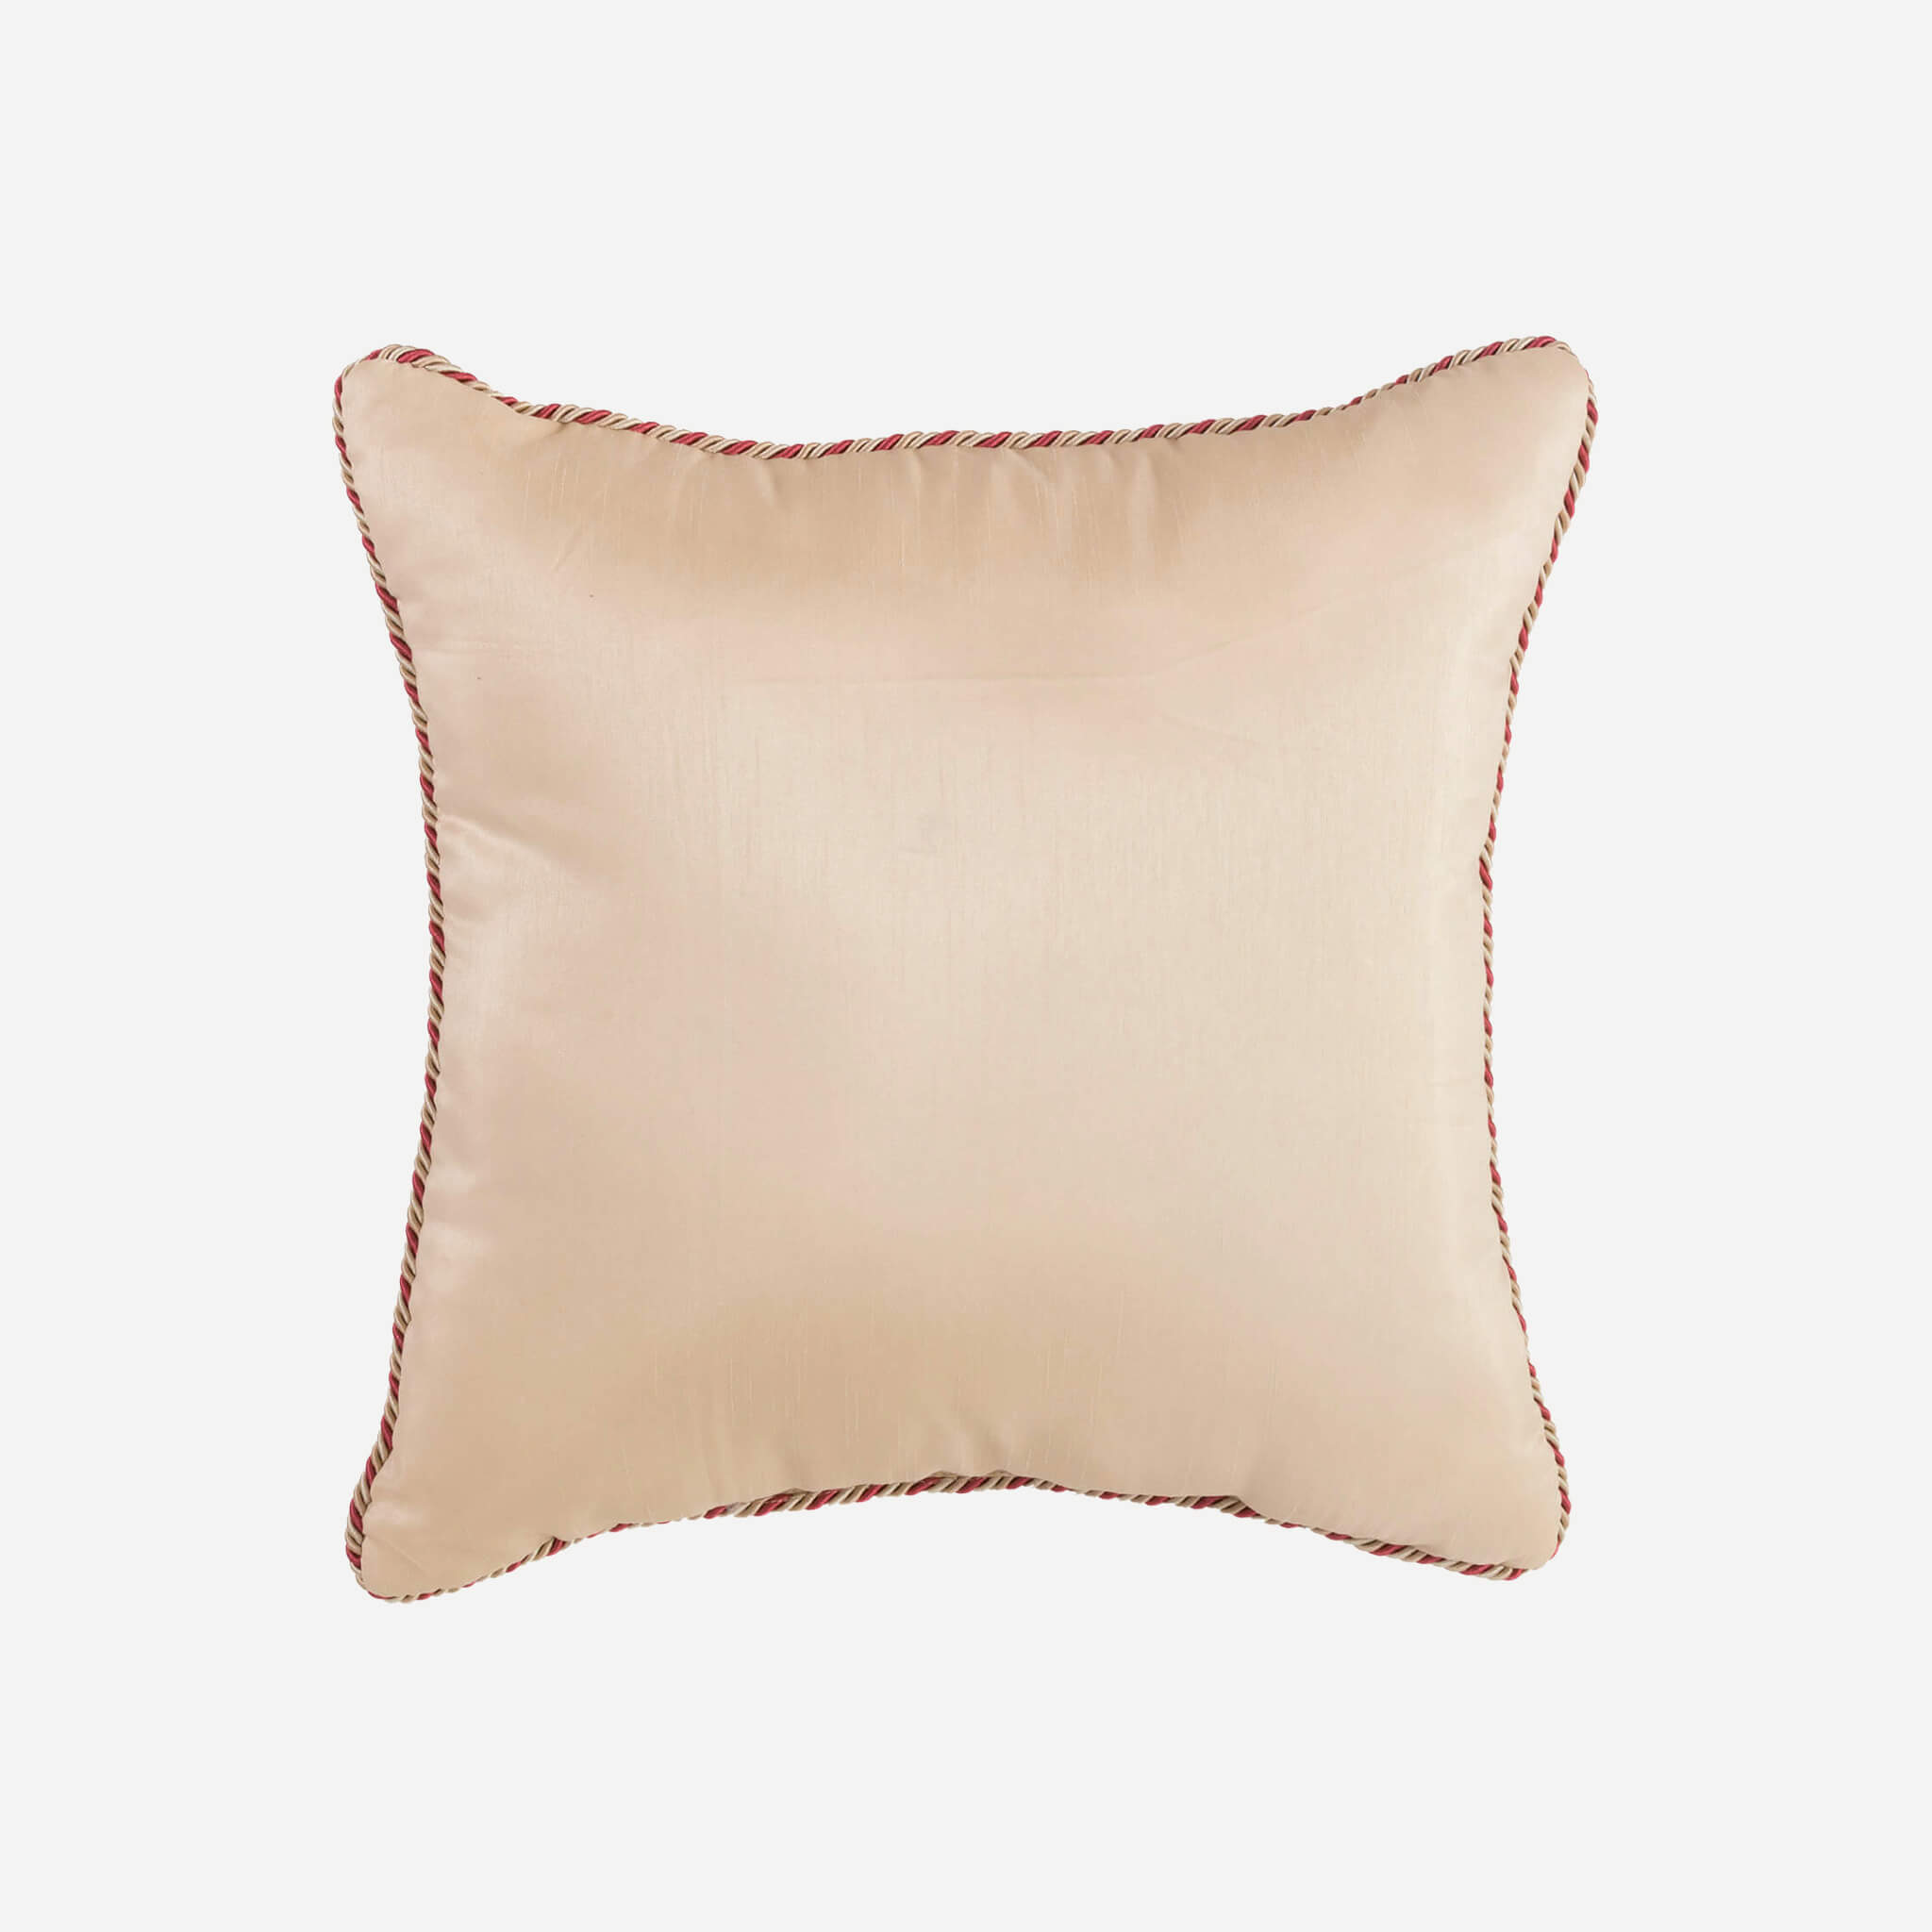 Blyth Fashion Pillow